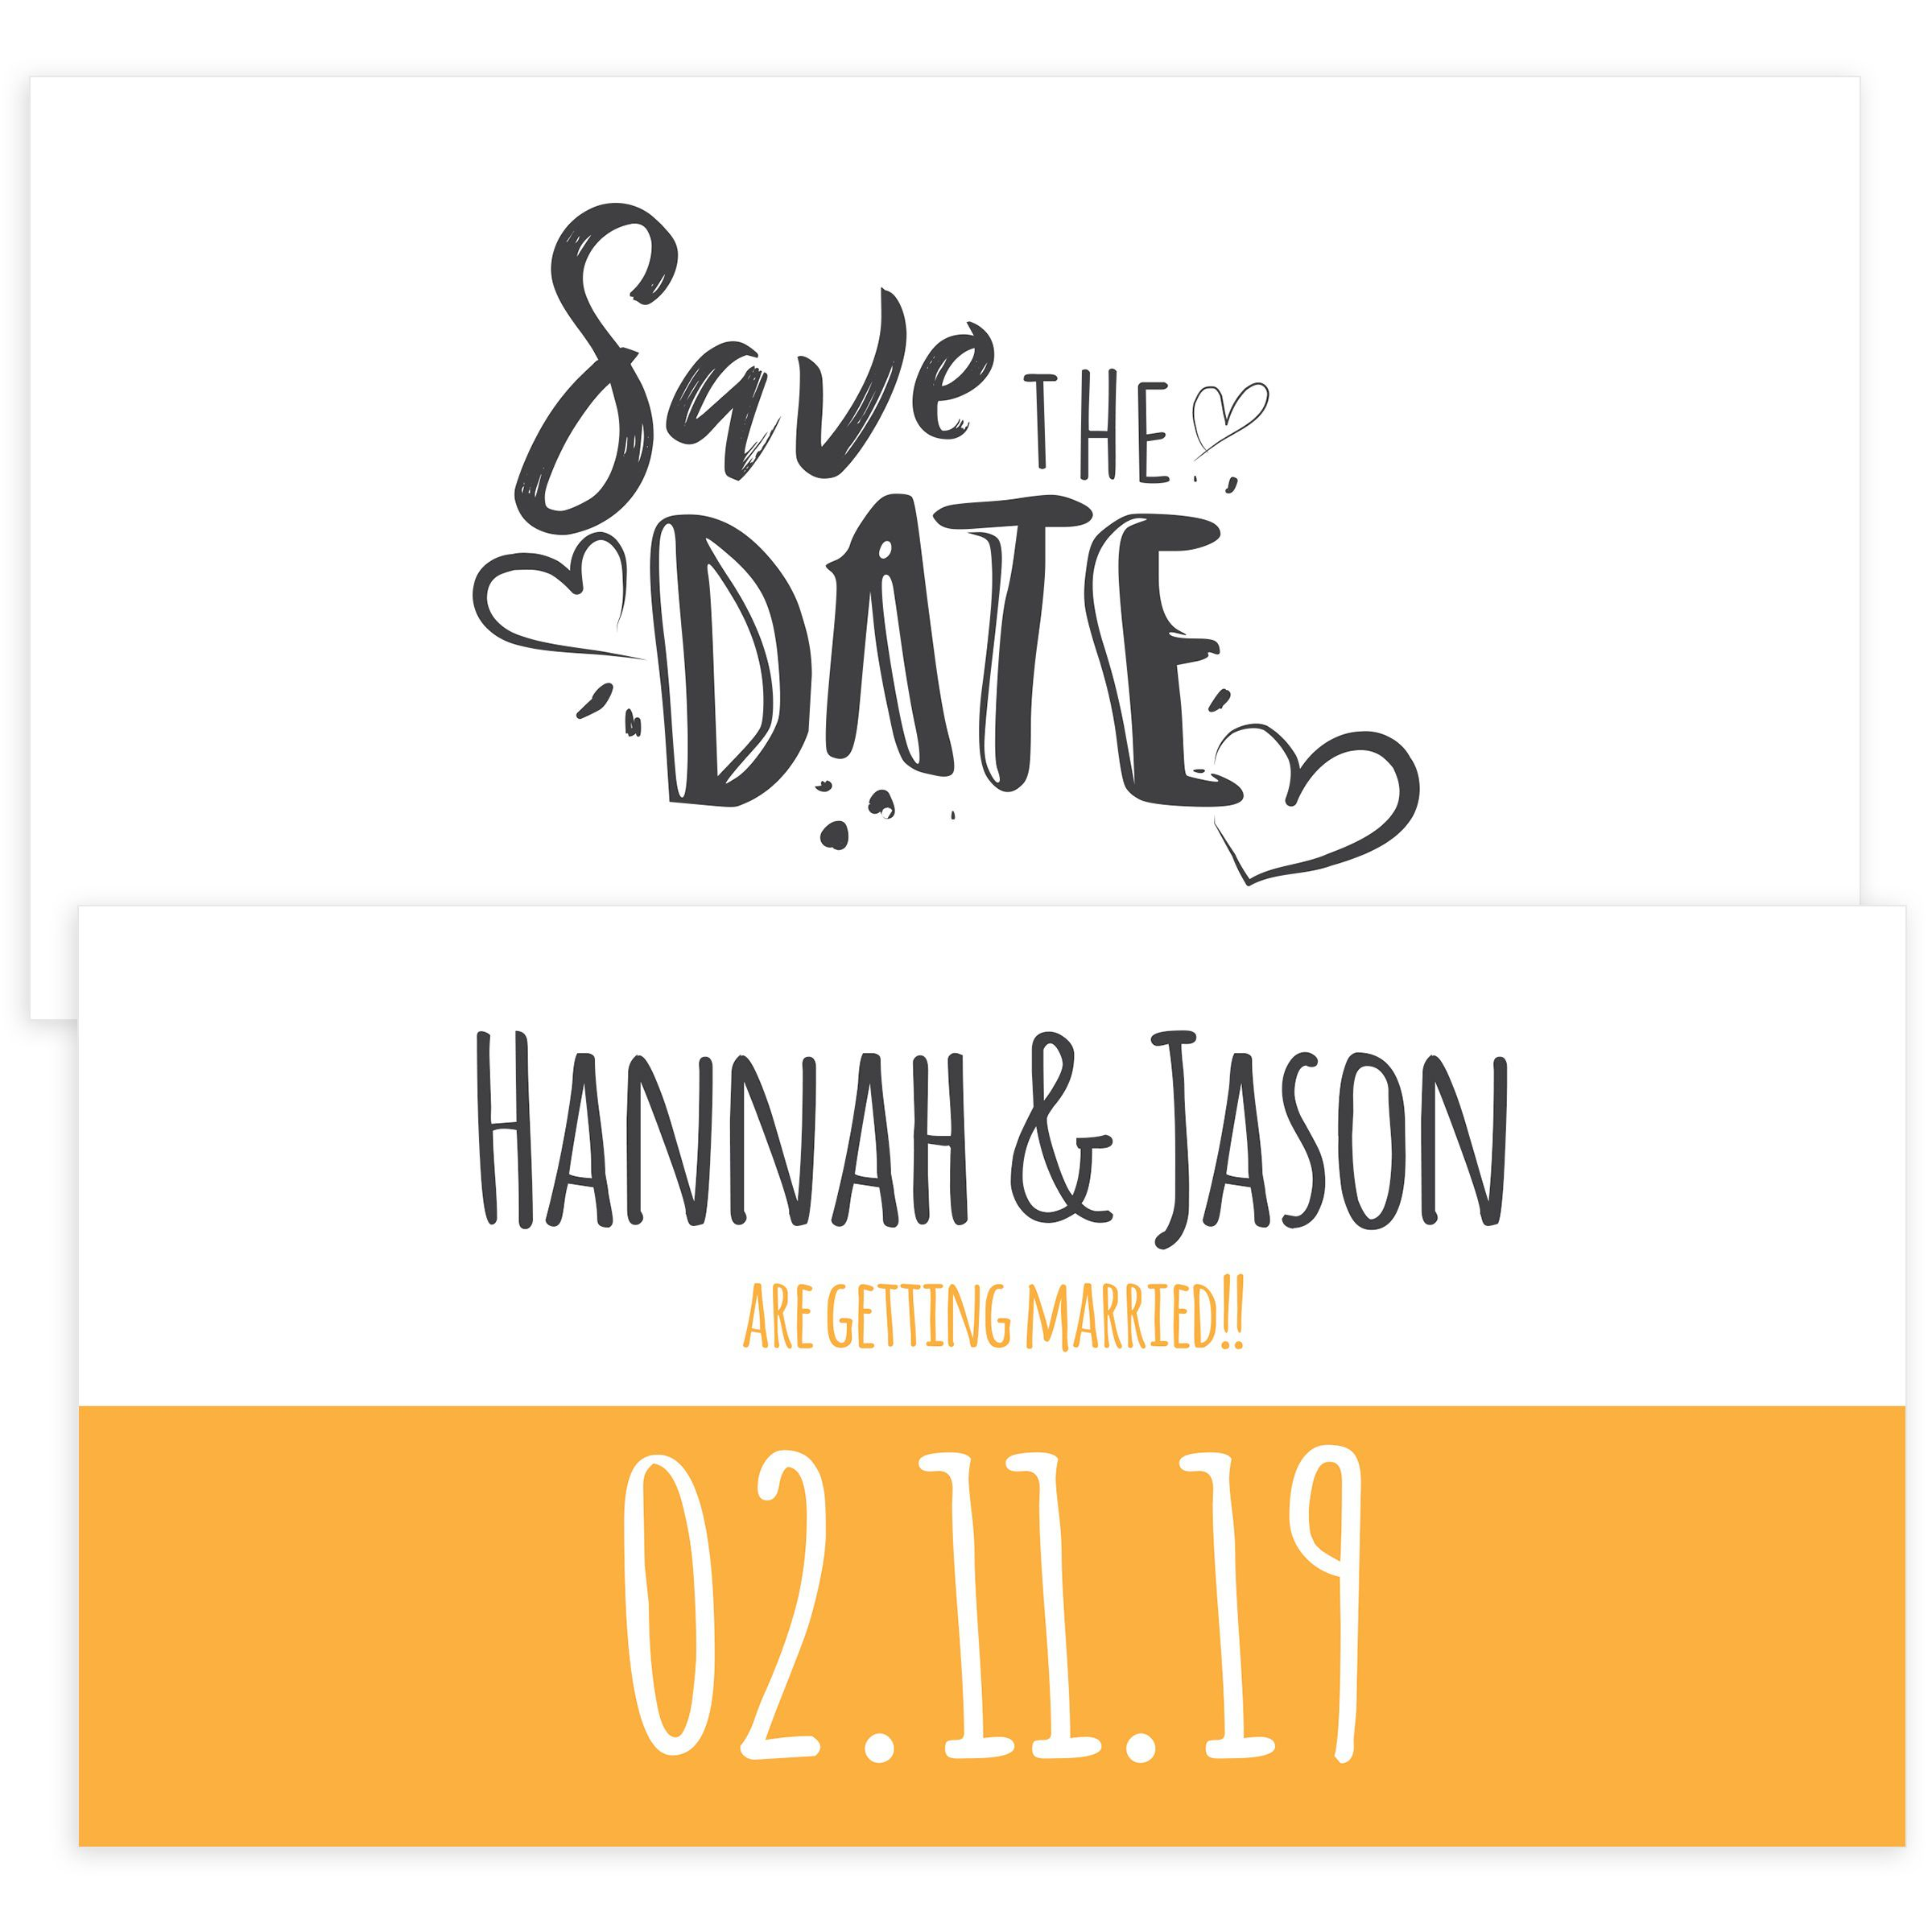 008 Singular Save The Date Template Photoshop Idea  Adobe CardFull